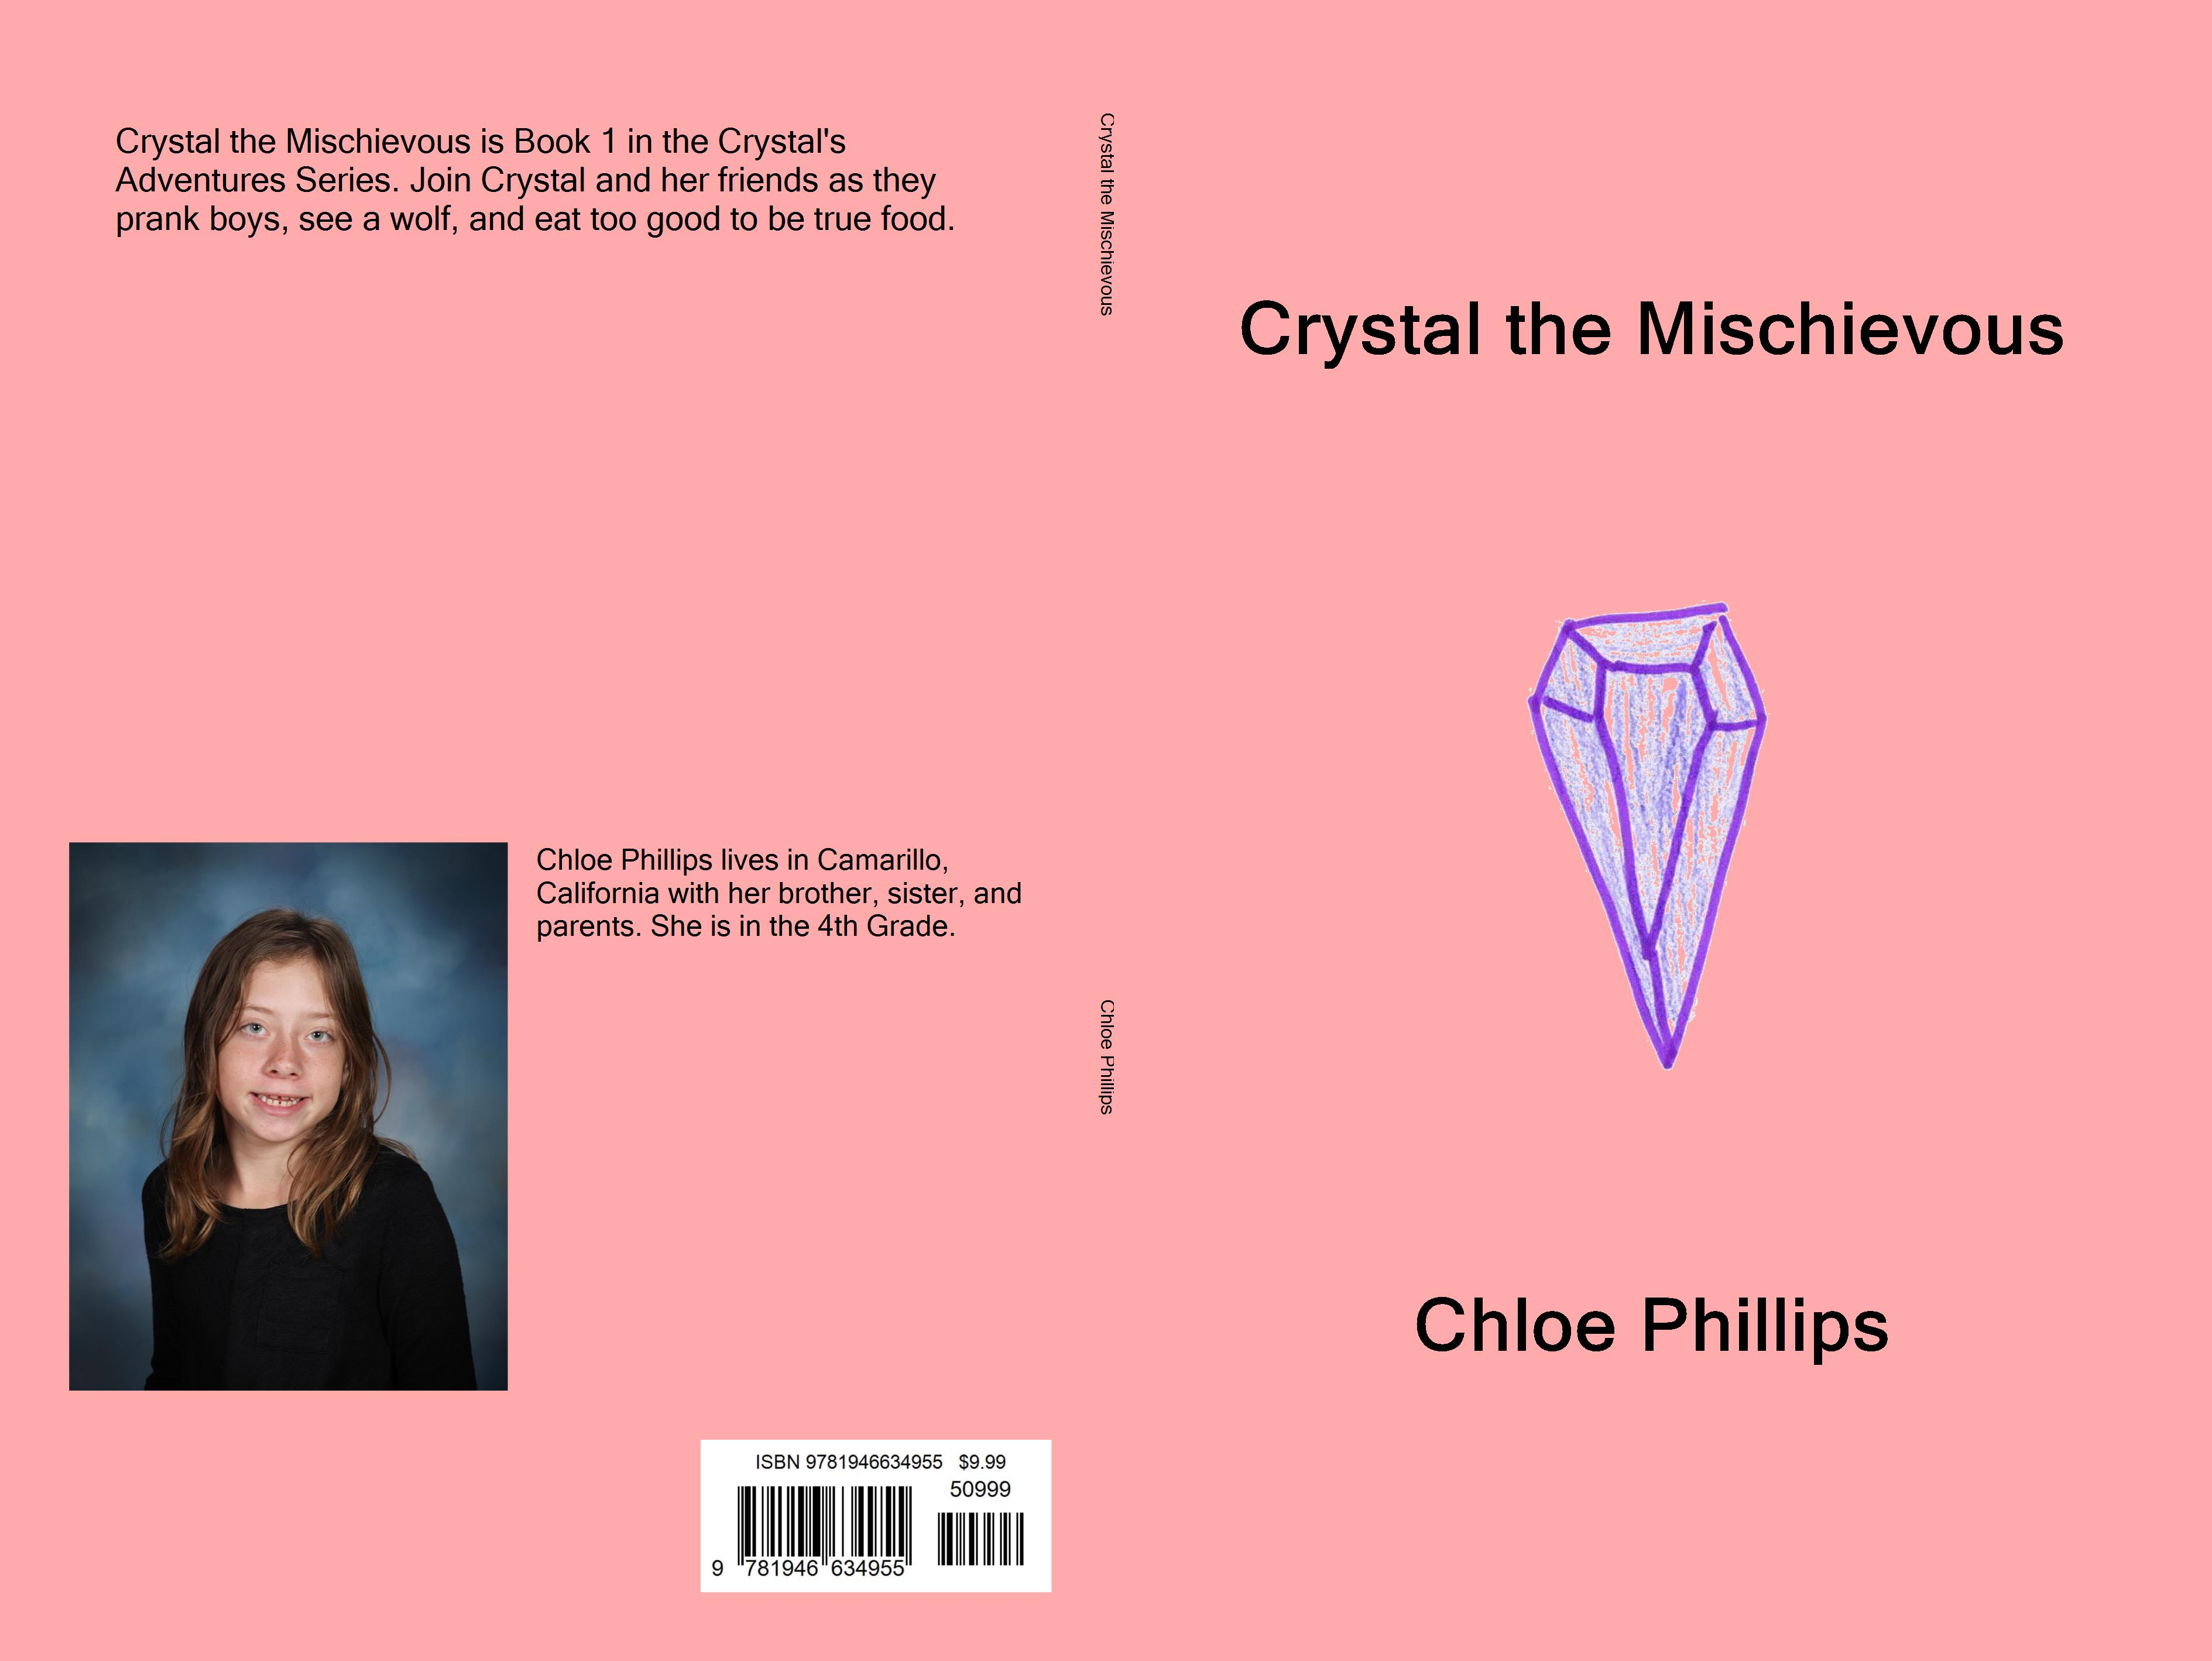 Crystal the Mischievous cover image